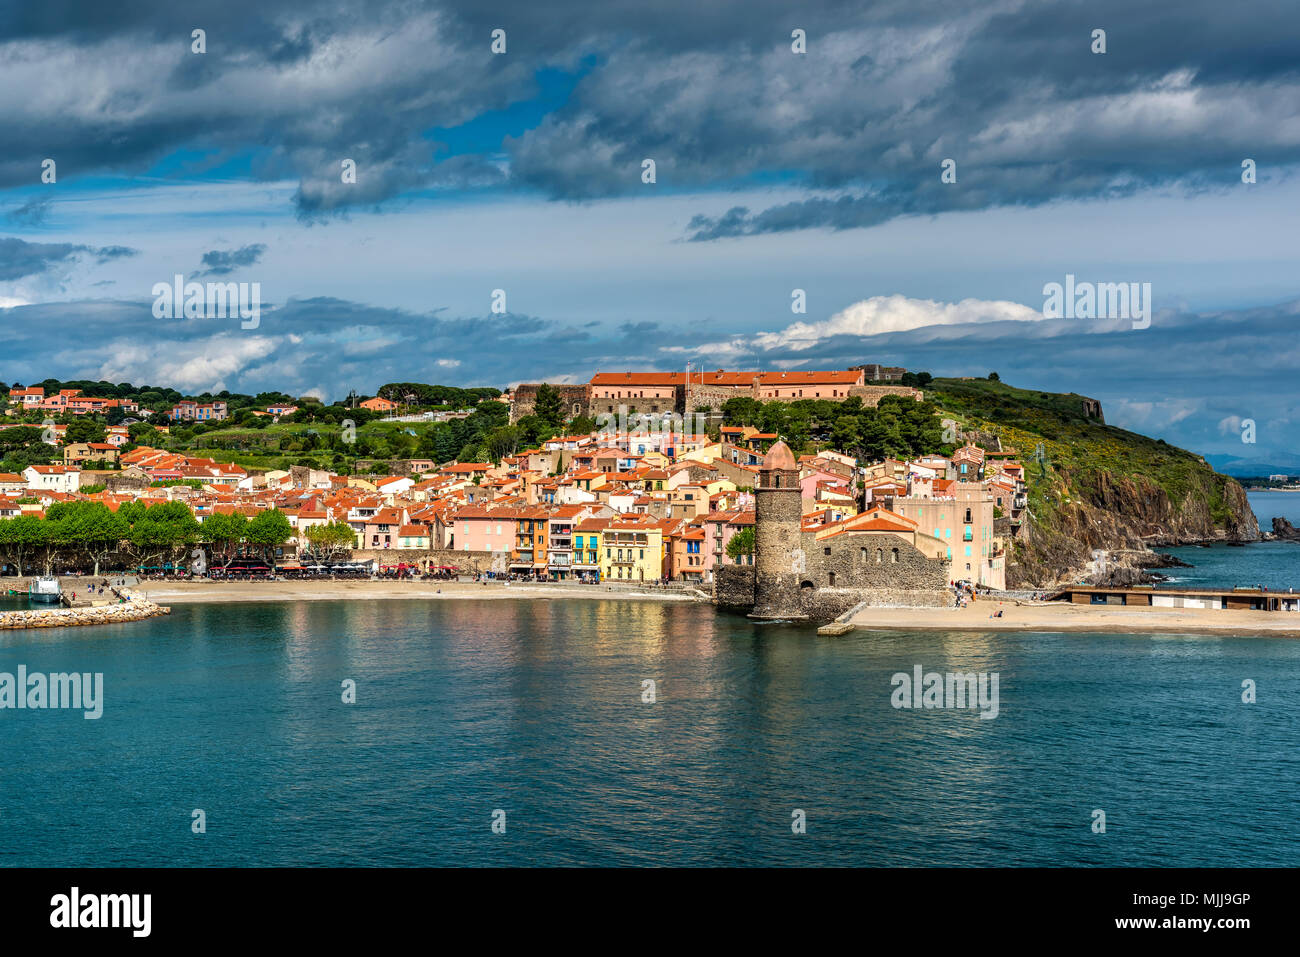 Collioure, Pyrenees-Orientales, France - Stock Image